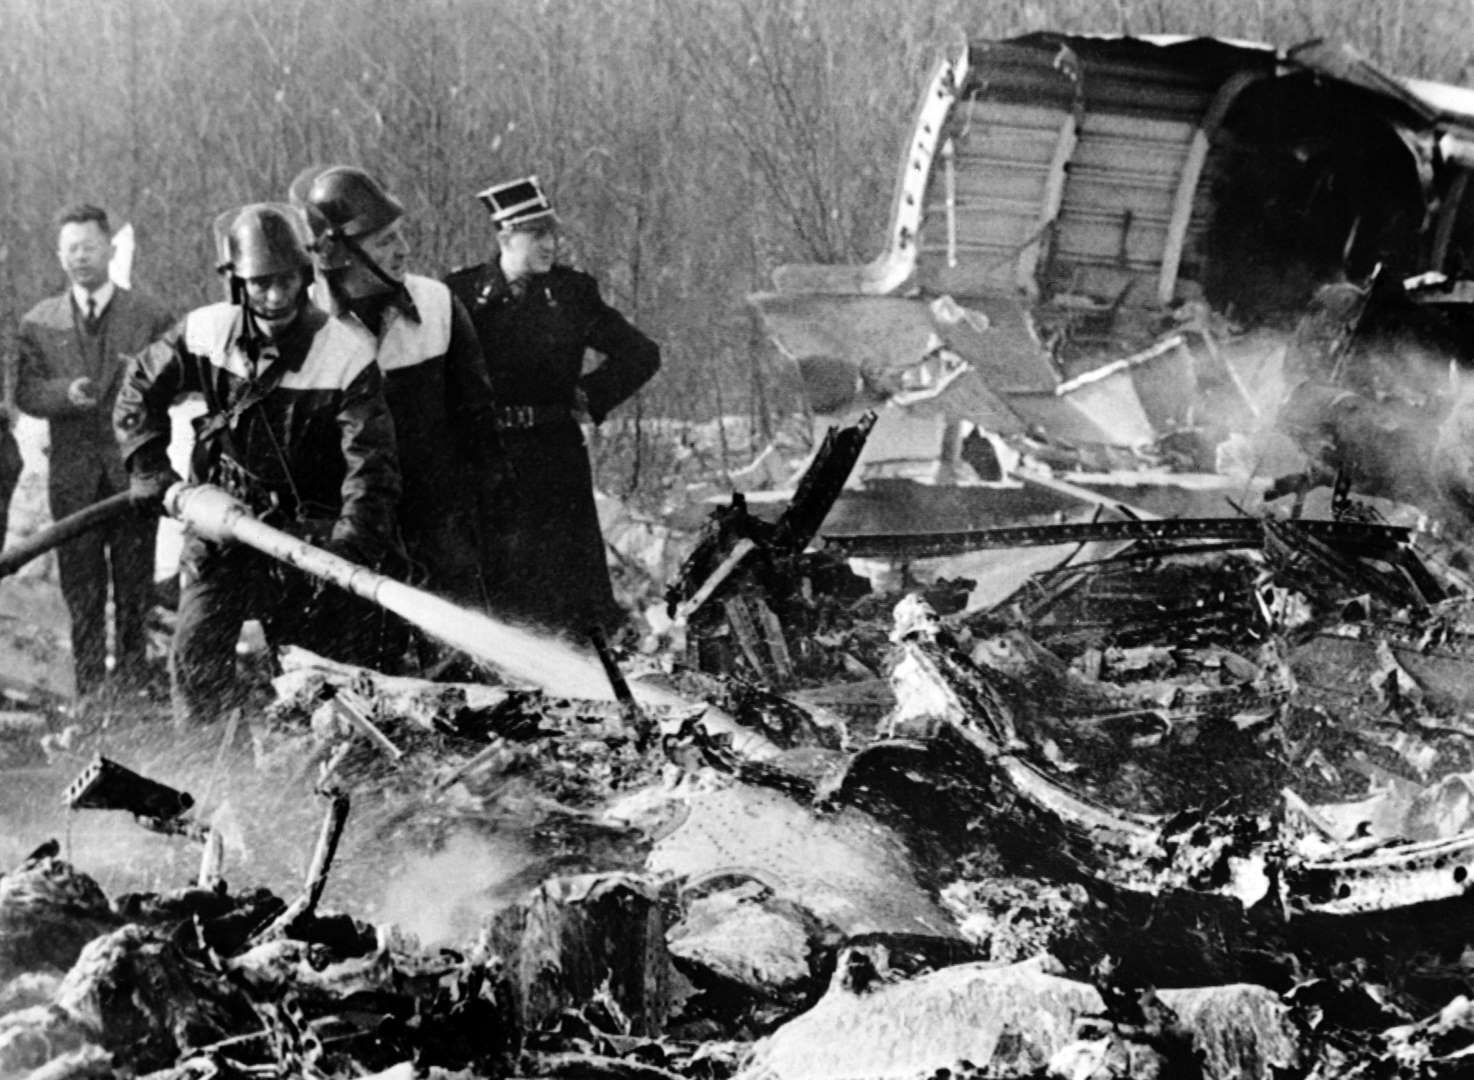 1961: The entire United States Figure Skating team dies in plane crash